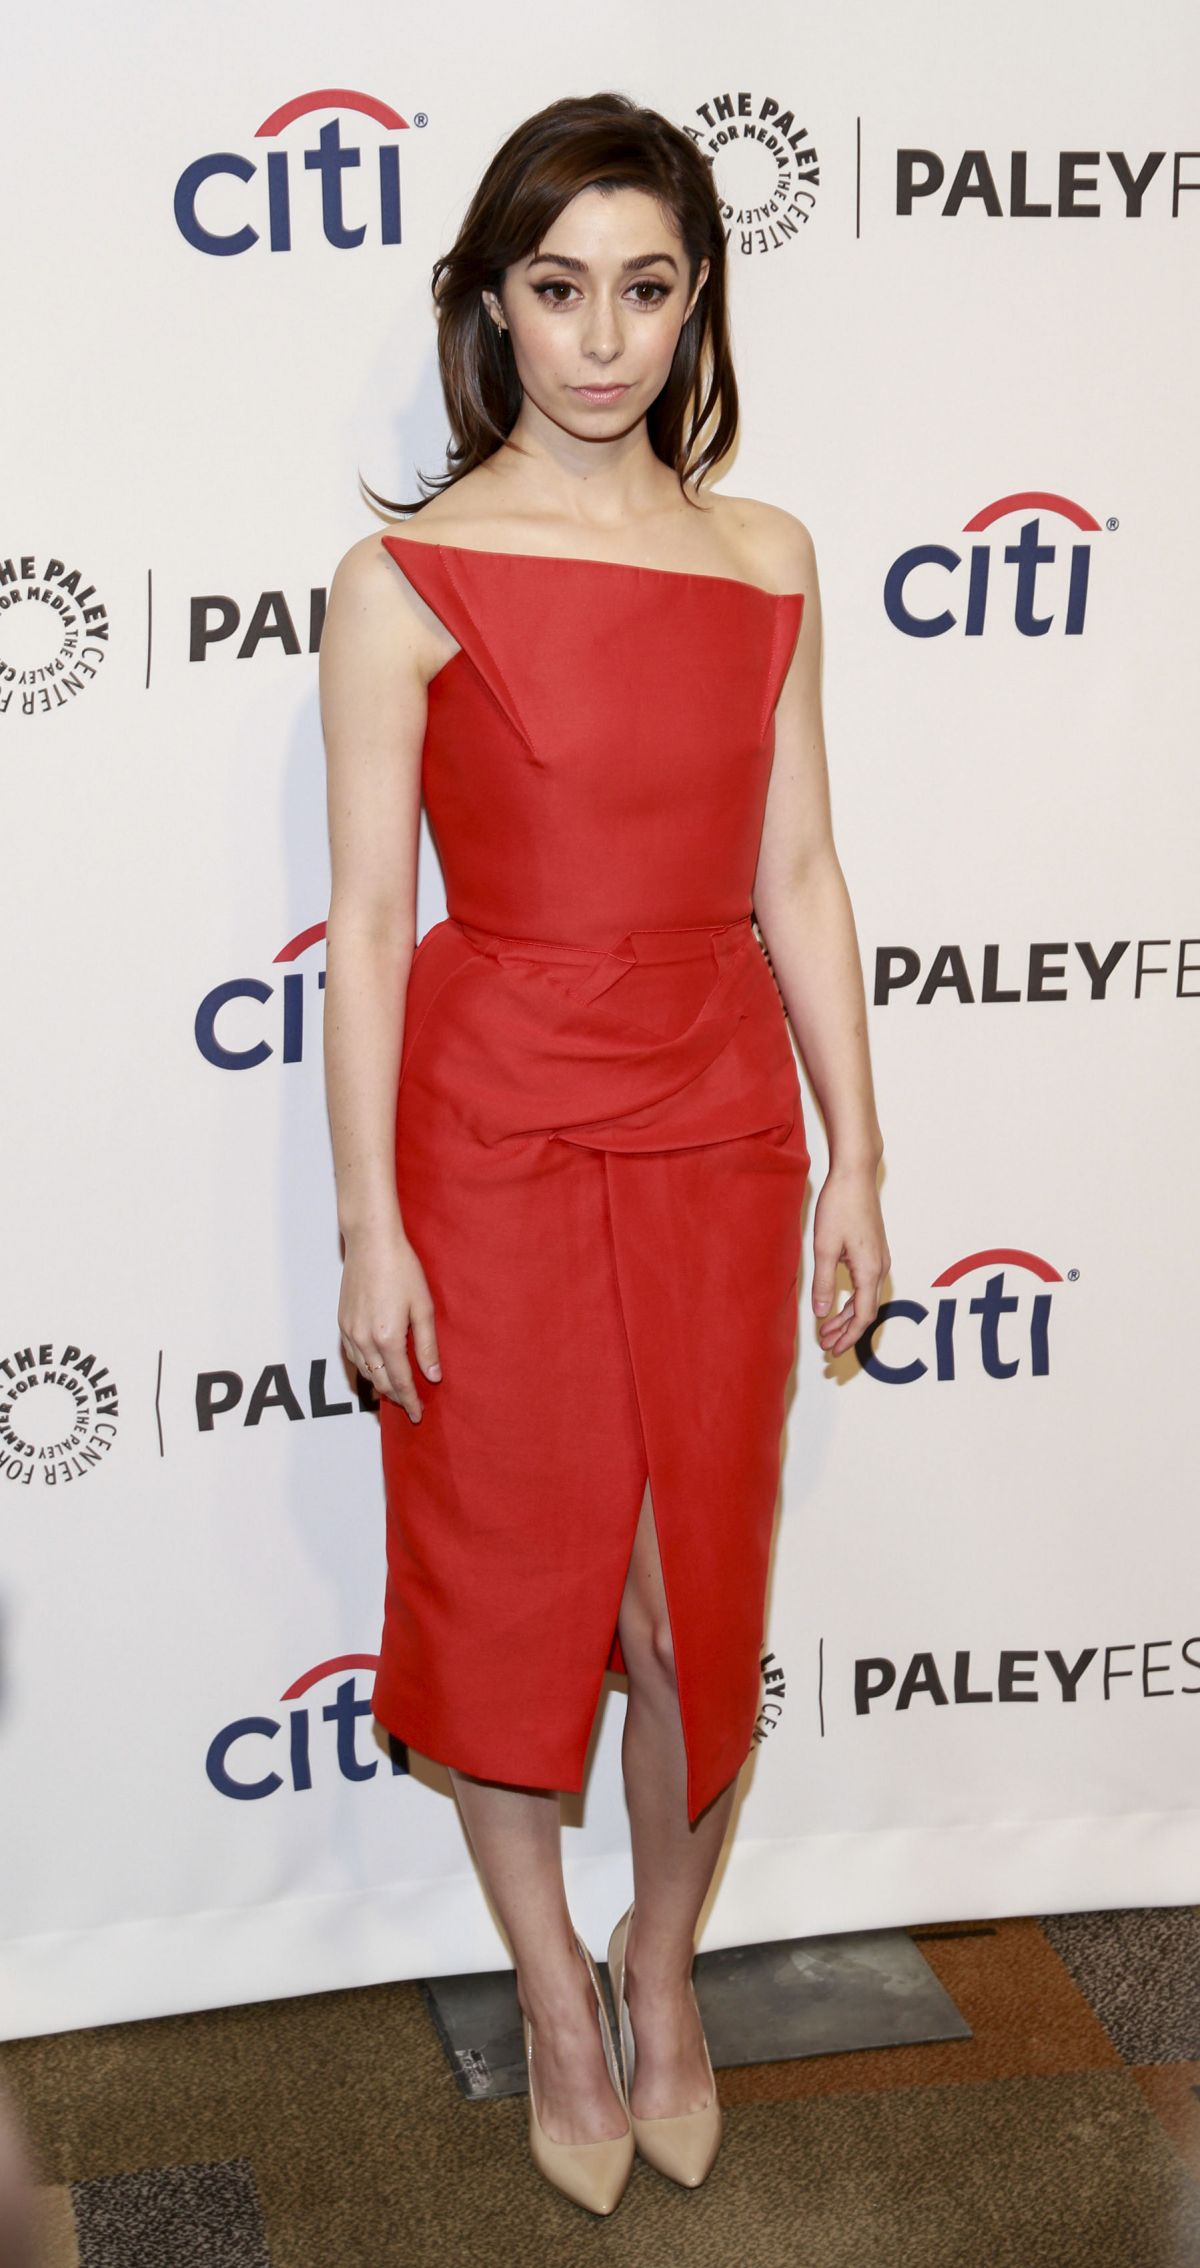 Cristin Milioti At The PaleyFest An Evening With HIMYM In Beverly Hills